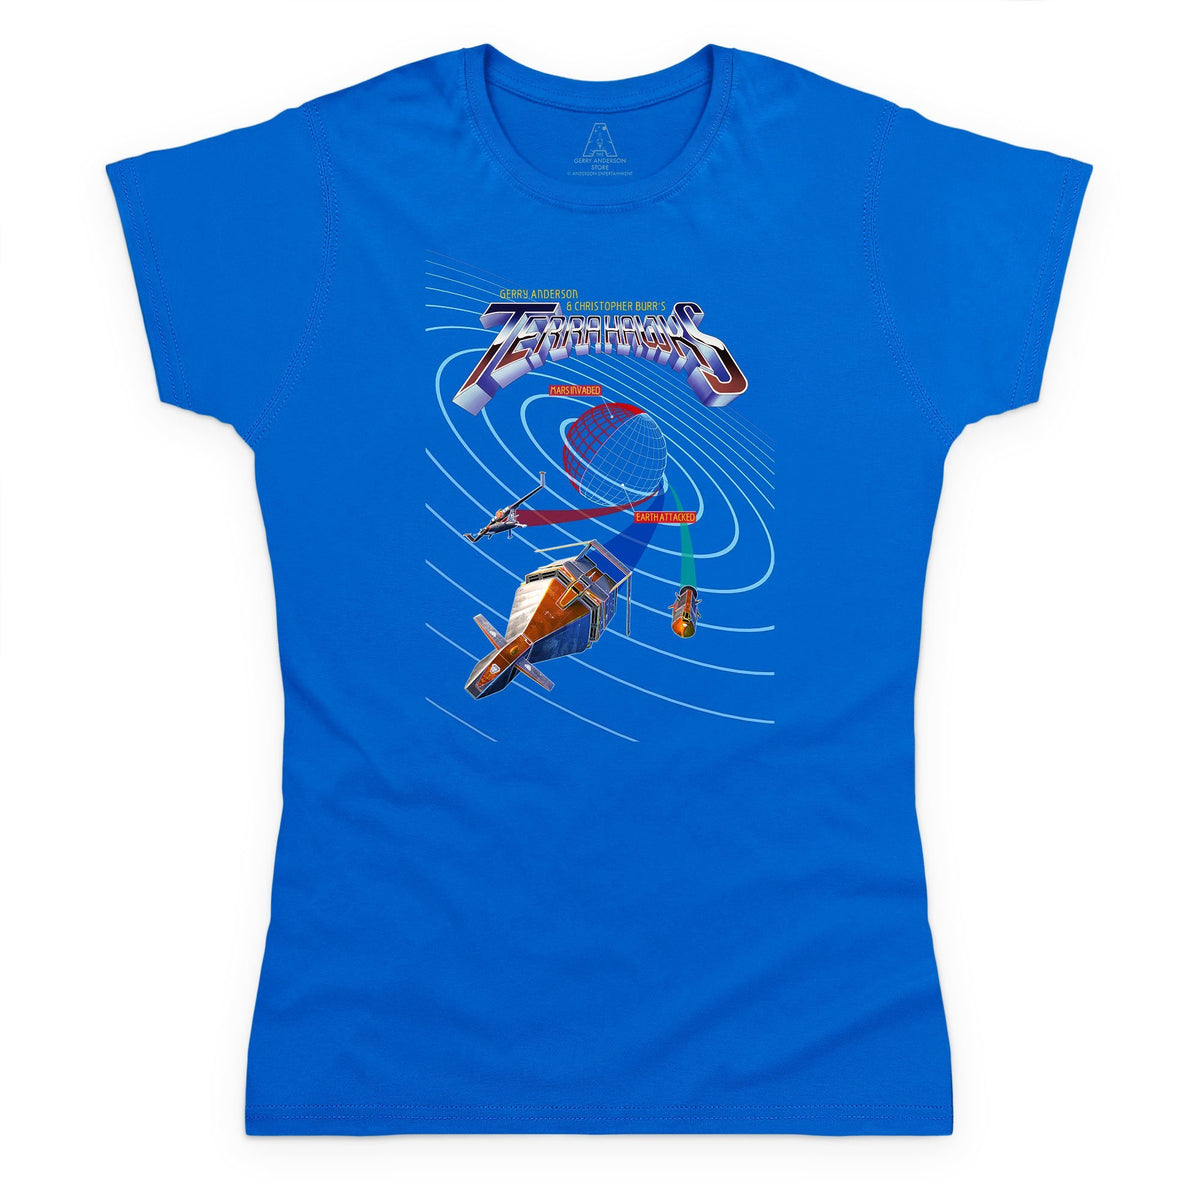 Limited Edition Terrahawks Day 2020 Women's T-Shirt [Official & Exclusive] - The Gerry Anderson Store